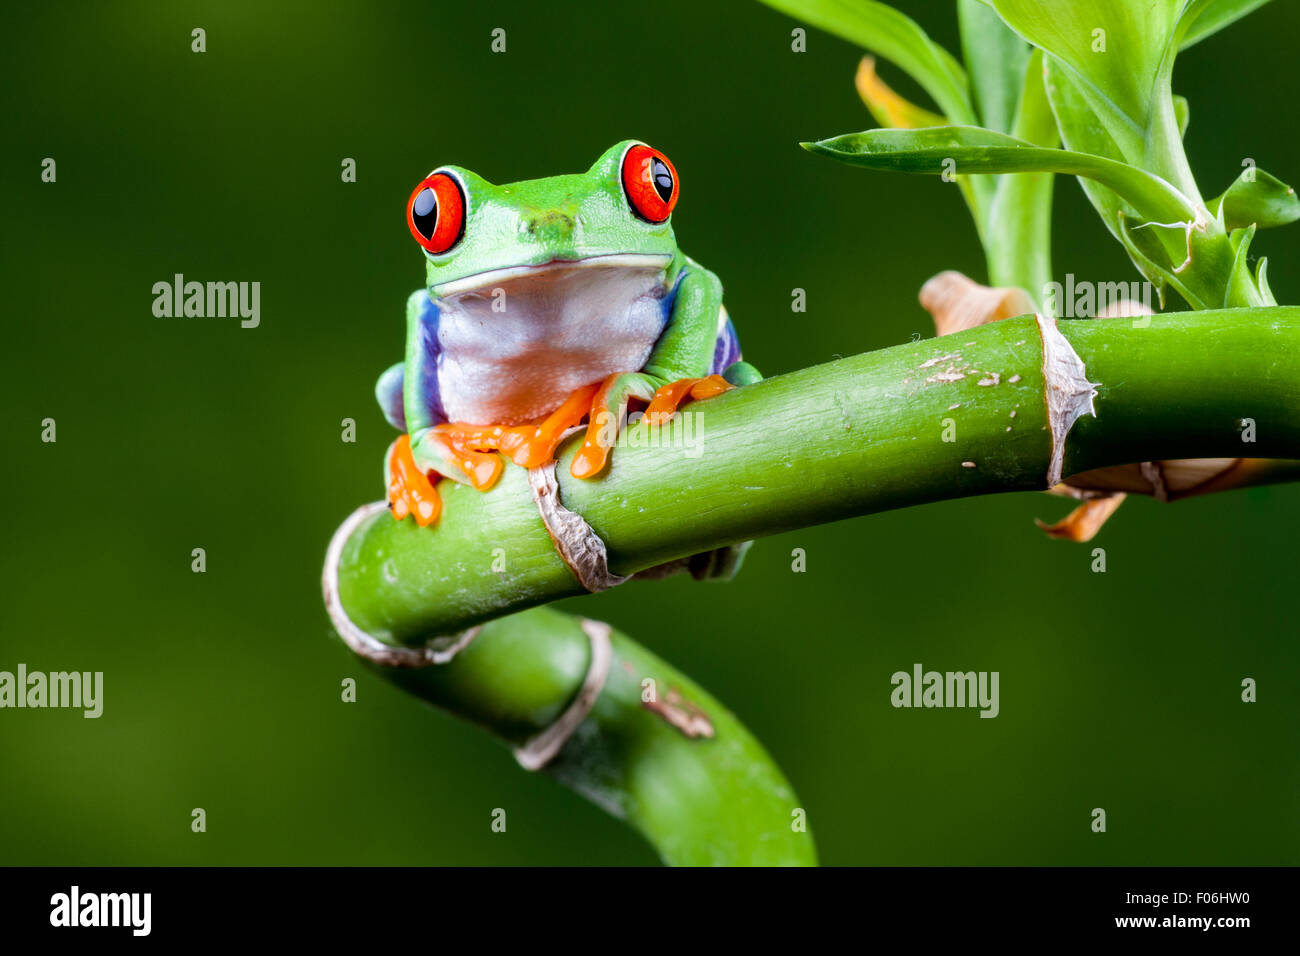 Red Eyed Tree Frog, Agalychnis callidryas, on 'Lucky' twisted bamboo plant. Stock Photo